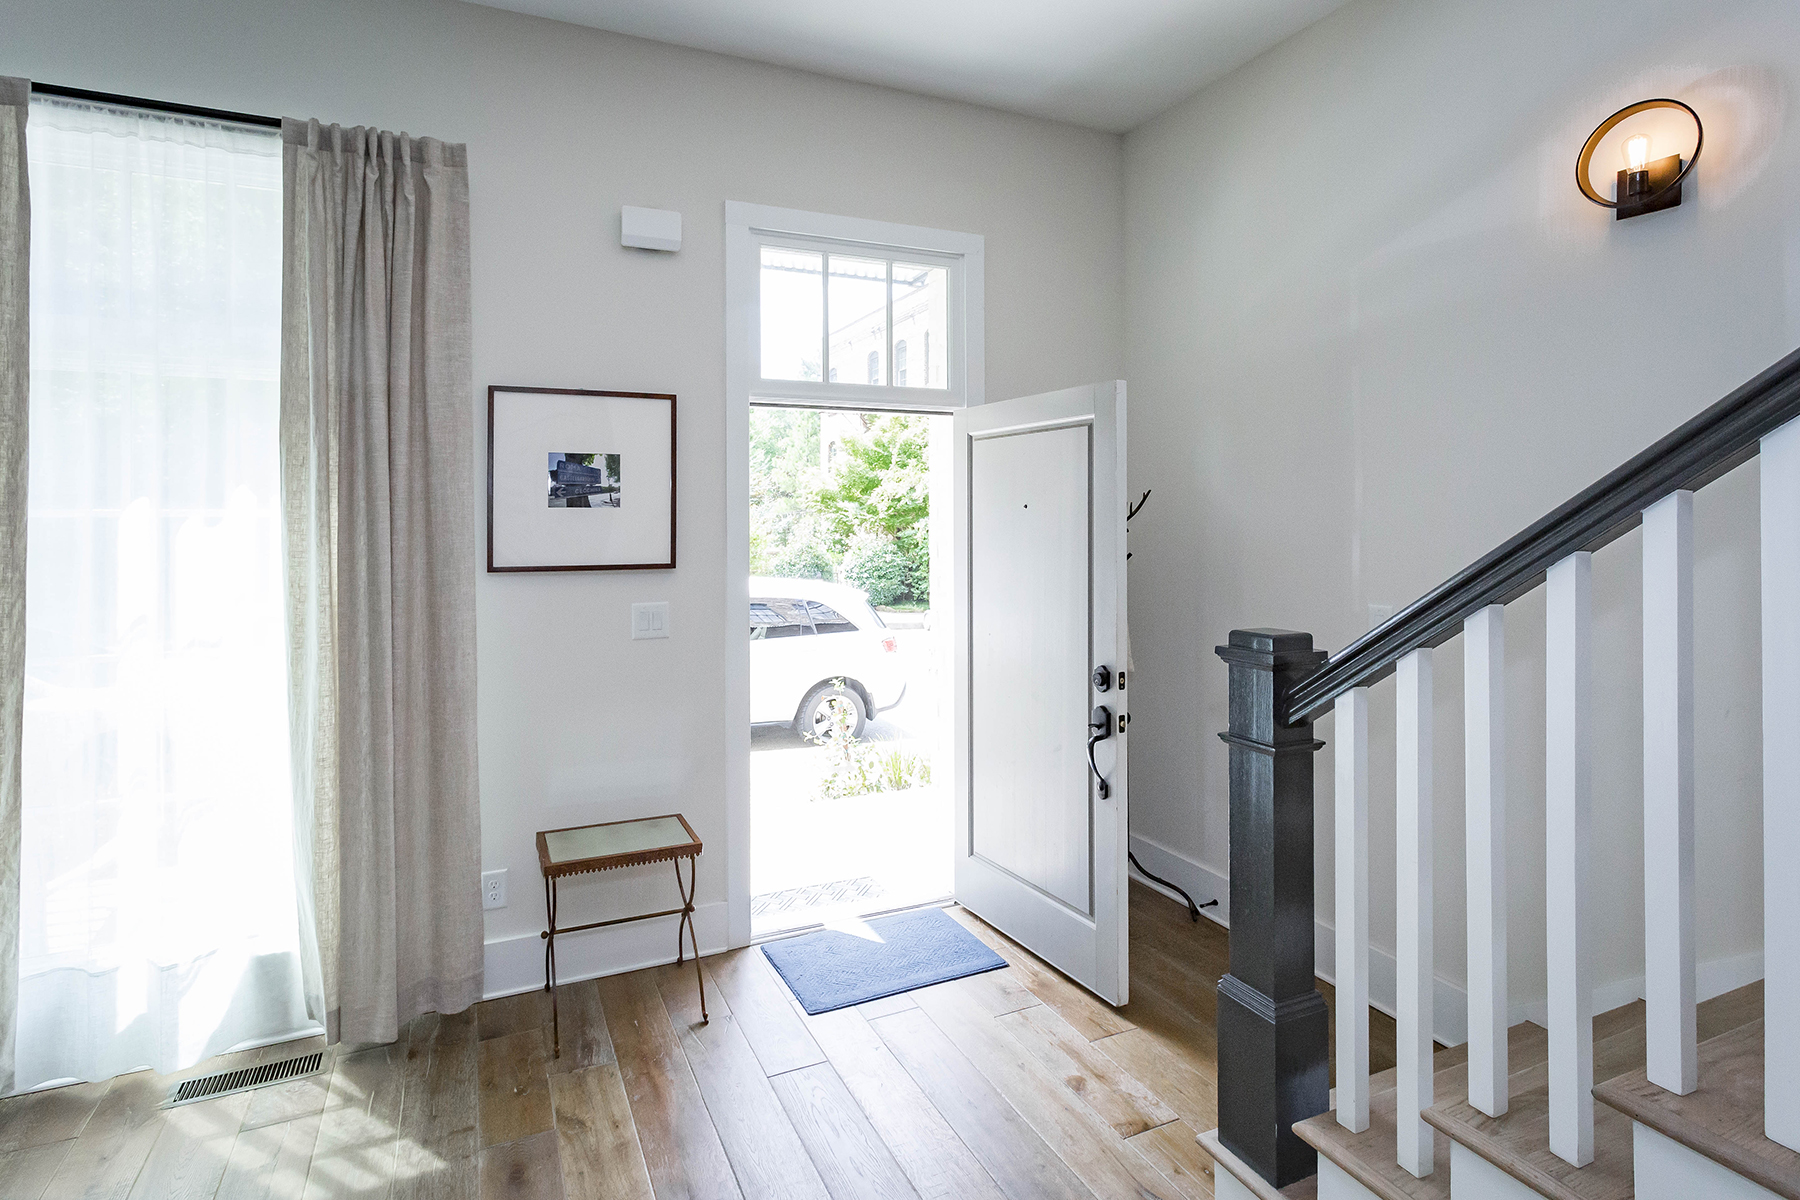 Additional photo for property listing at Charming and Spacious Townhome with Garage Parking in Serenbe 454 Selborne Way, Chattahoochee Hills, Georgië 30268 Verenigde Staten